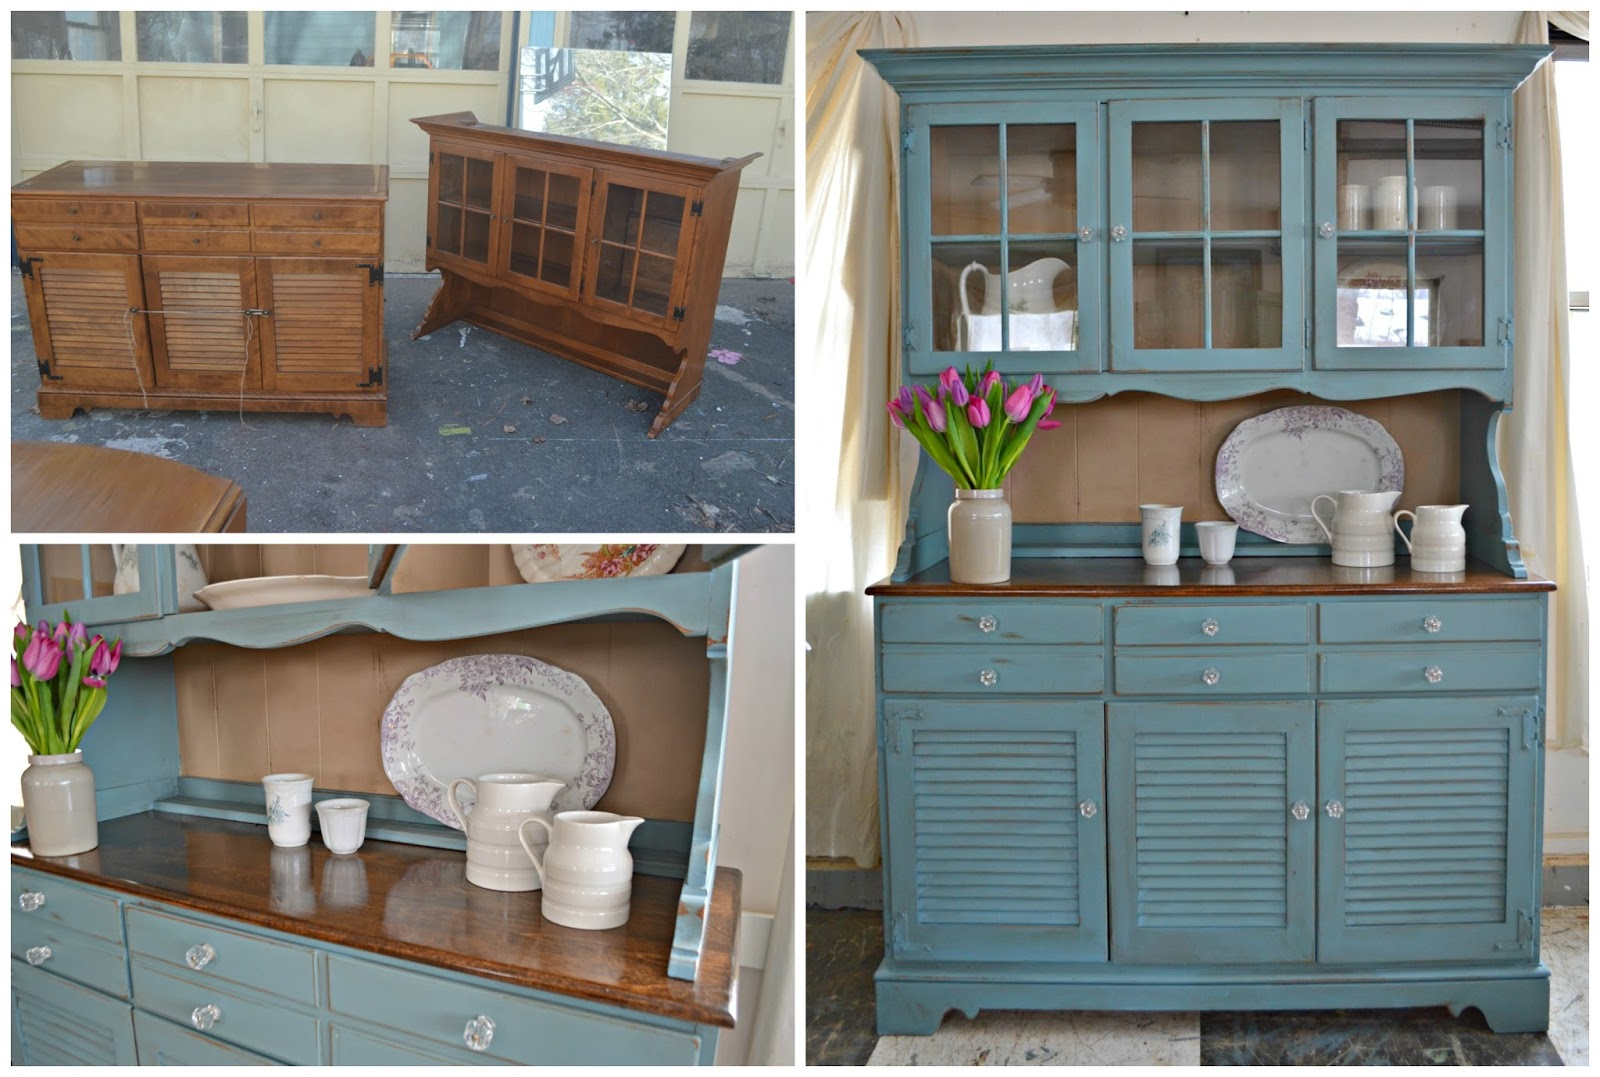 Heir and Space: A Maple Ethan Allen Hutch in Blue and Cream